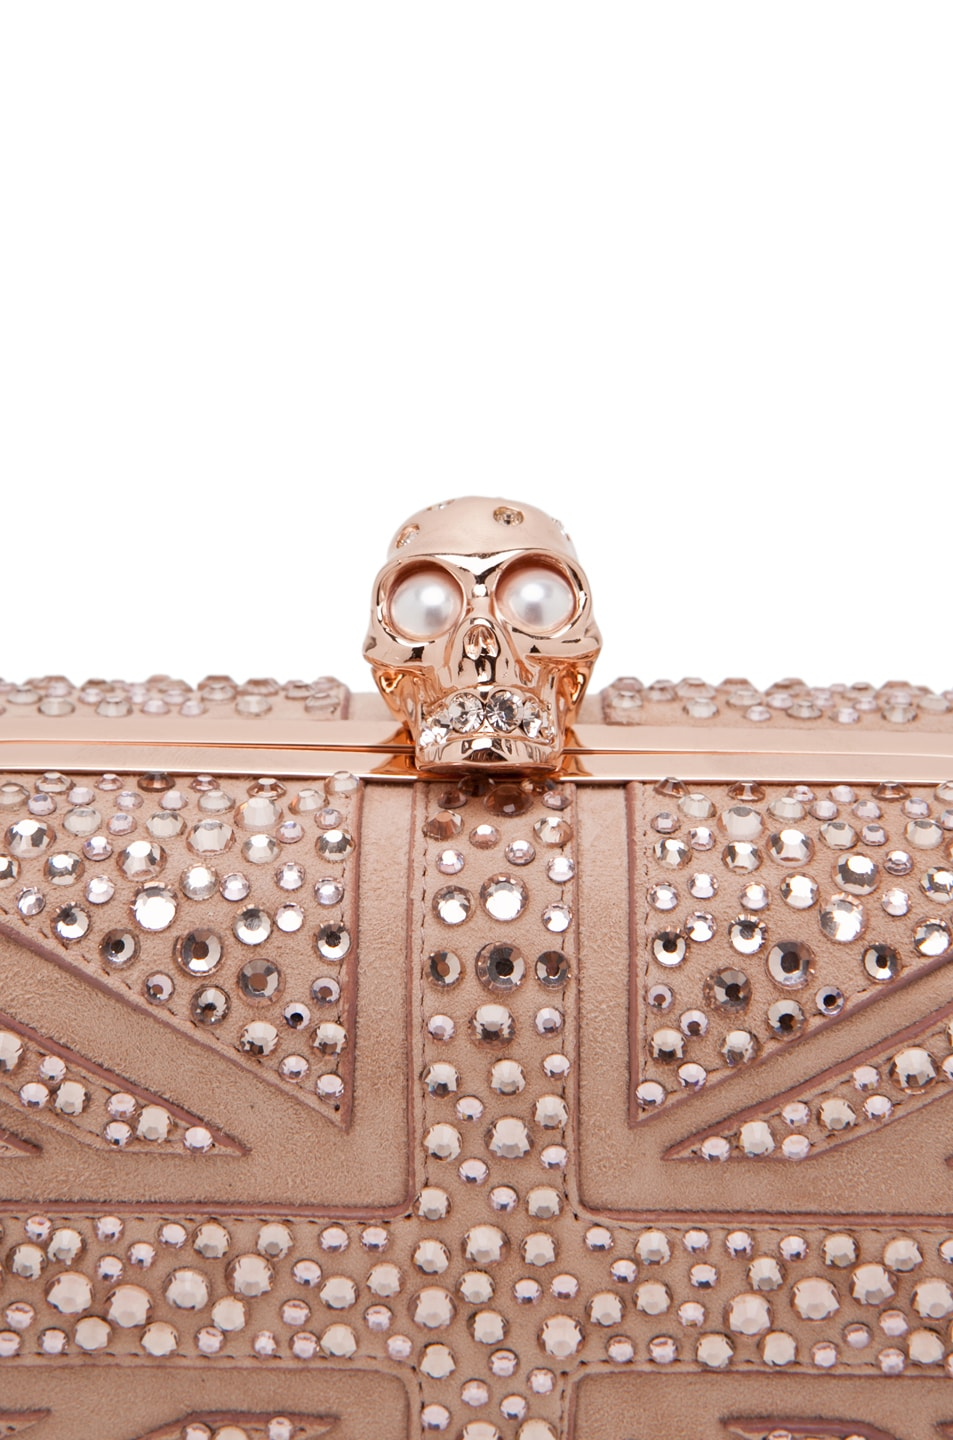 Image 5 of Alexander McQueen Skull Clutch in Pale Pink